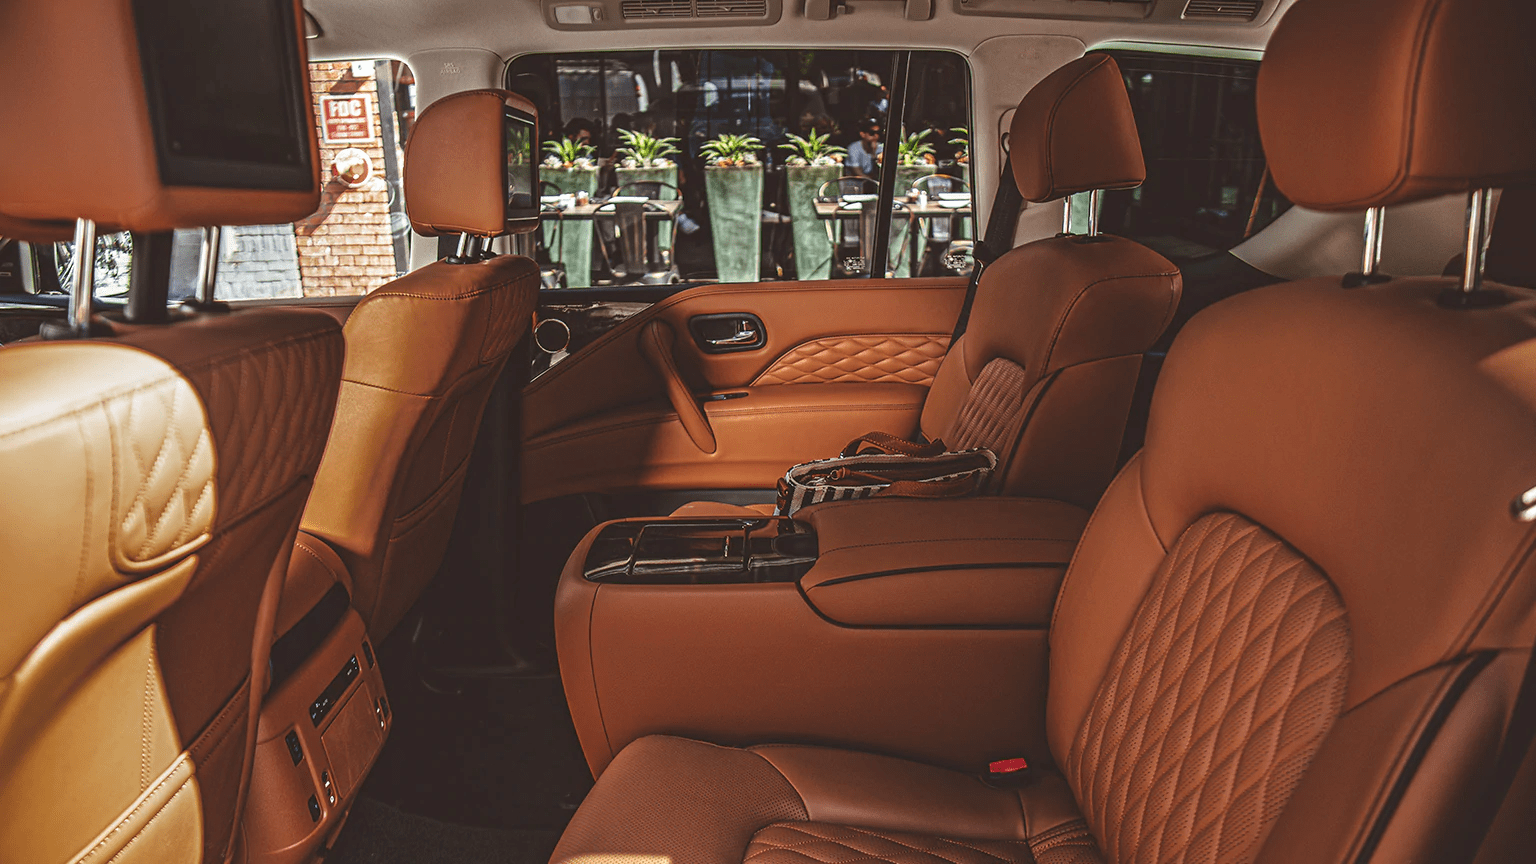 2020 INFINITI QX80 interior in brown leather